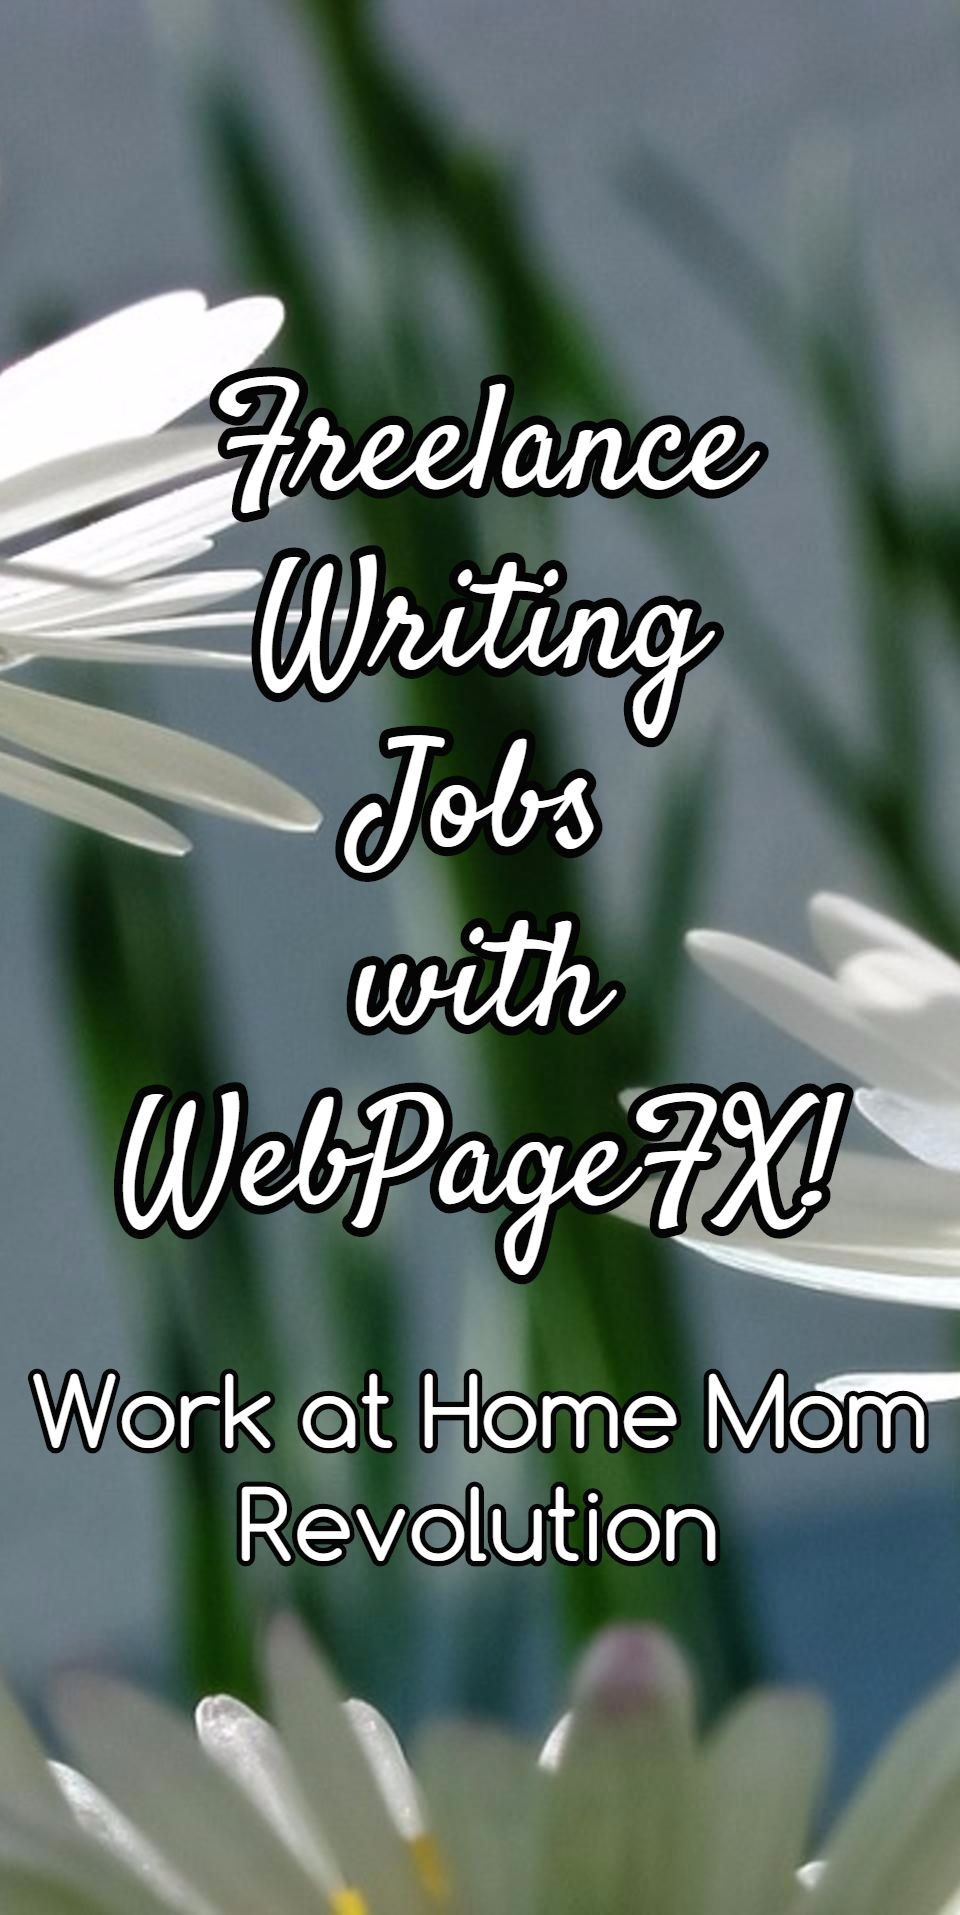 Freelance Writing Jobs With Webpagefx Work At Home Mom Revolution Writing Jobs Freelance Writing Jobs Work From Home Moms